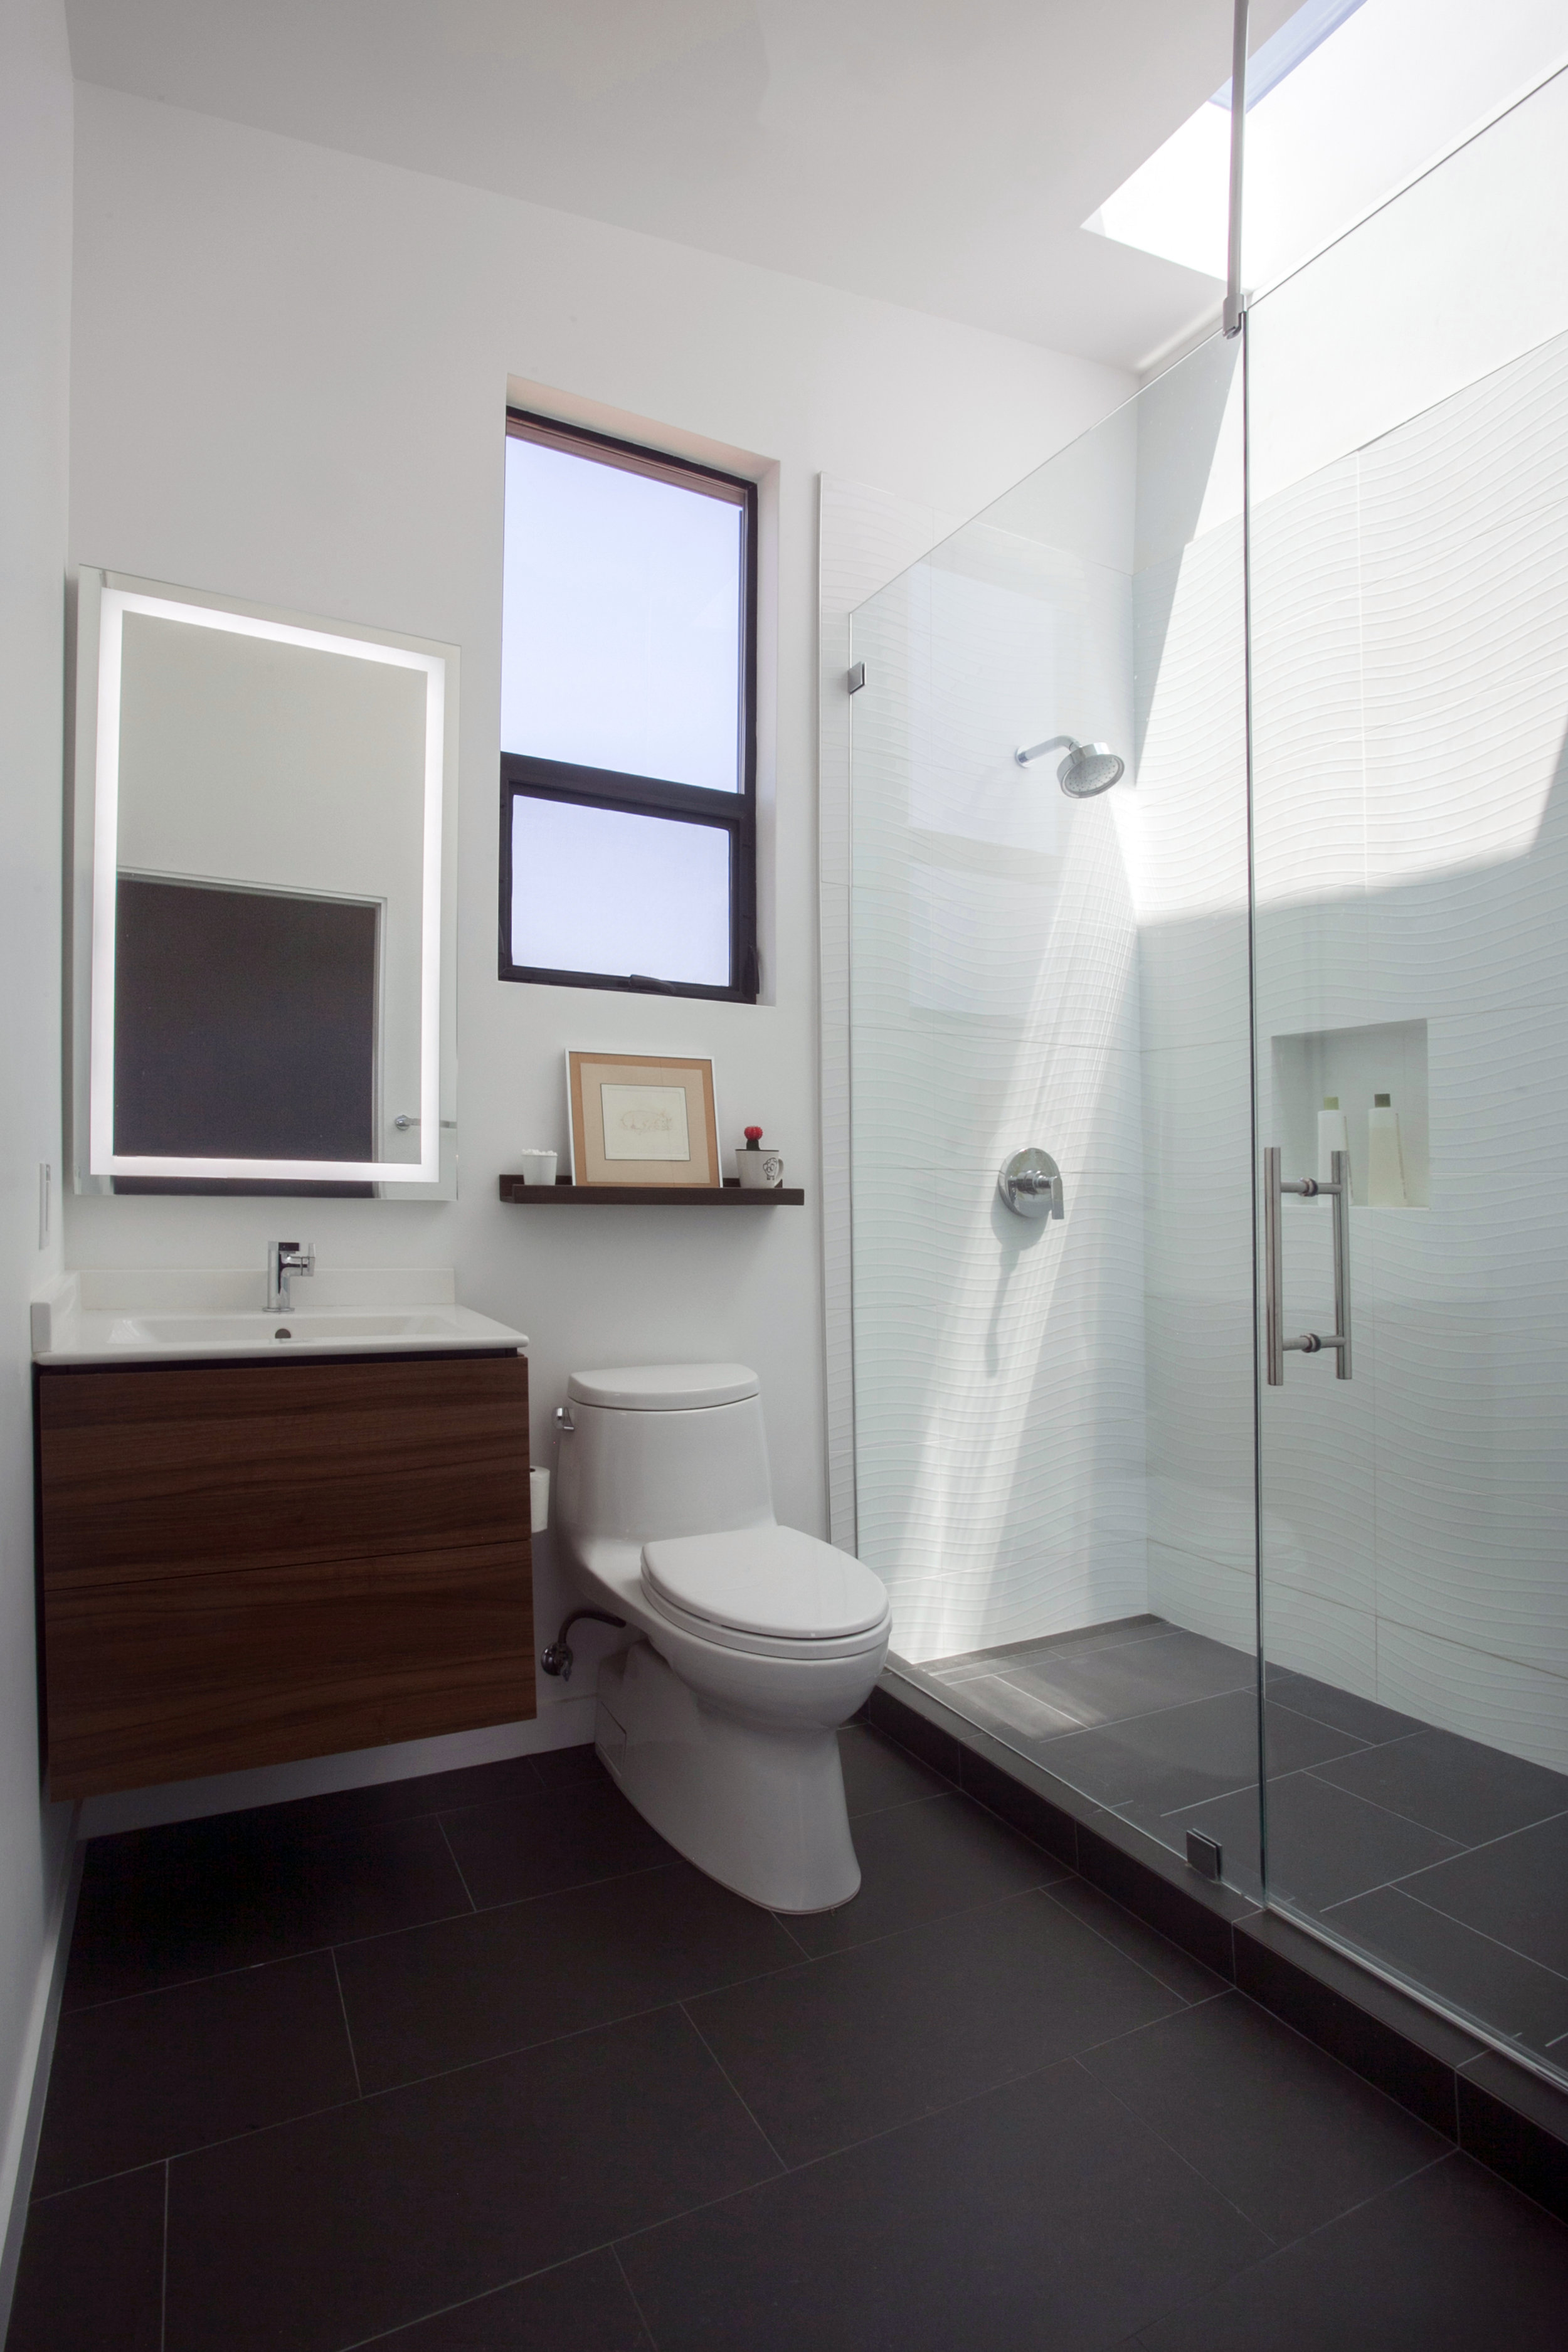 The ensuite bathroom for the second upstairs bedroom picks up on details from the master bathroom - walnut cabinets, 3D tile washed by light, and dark tile floors.